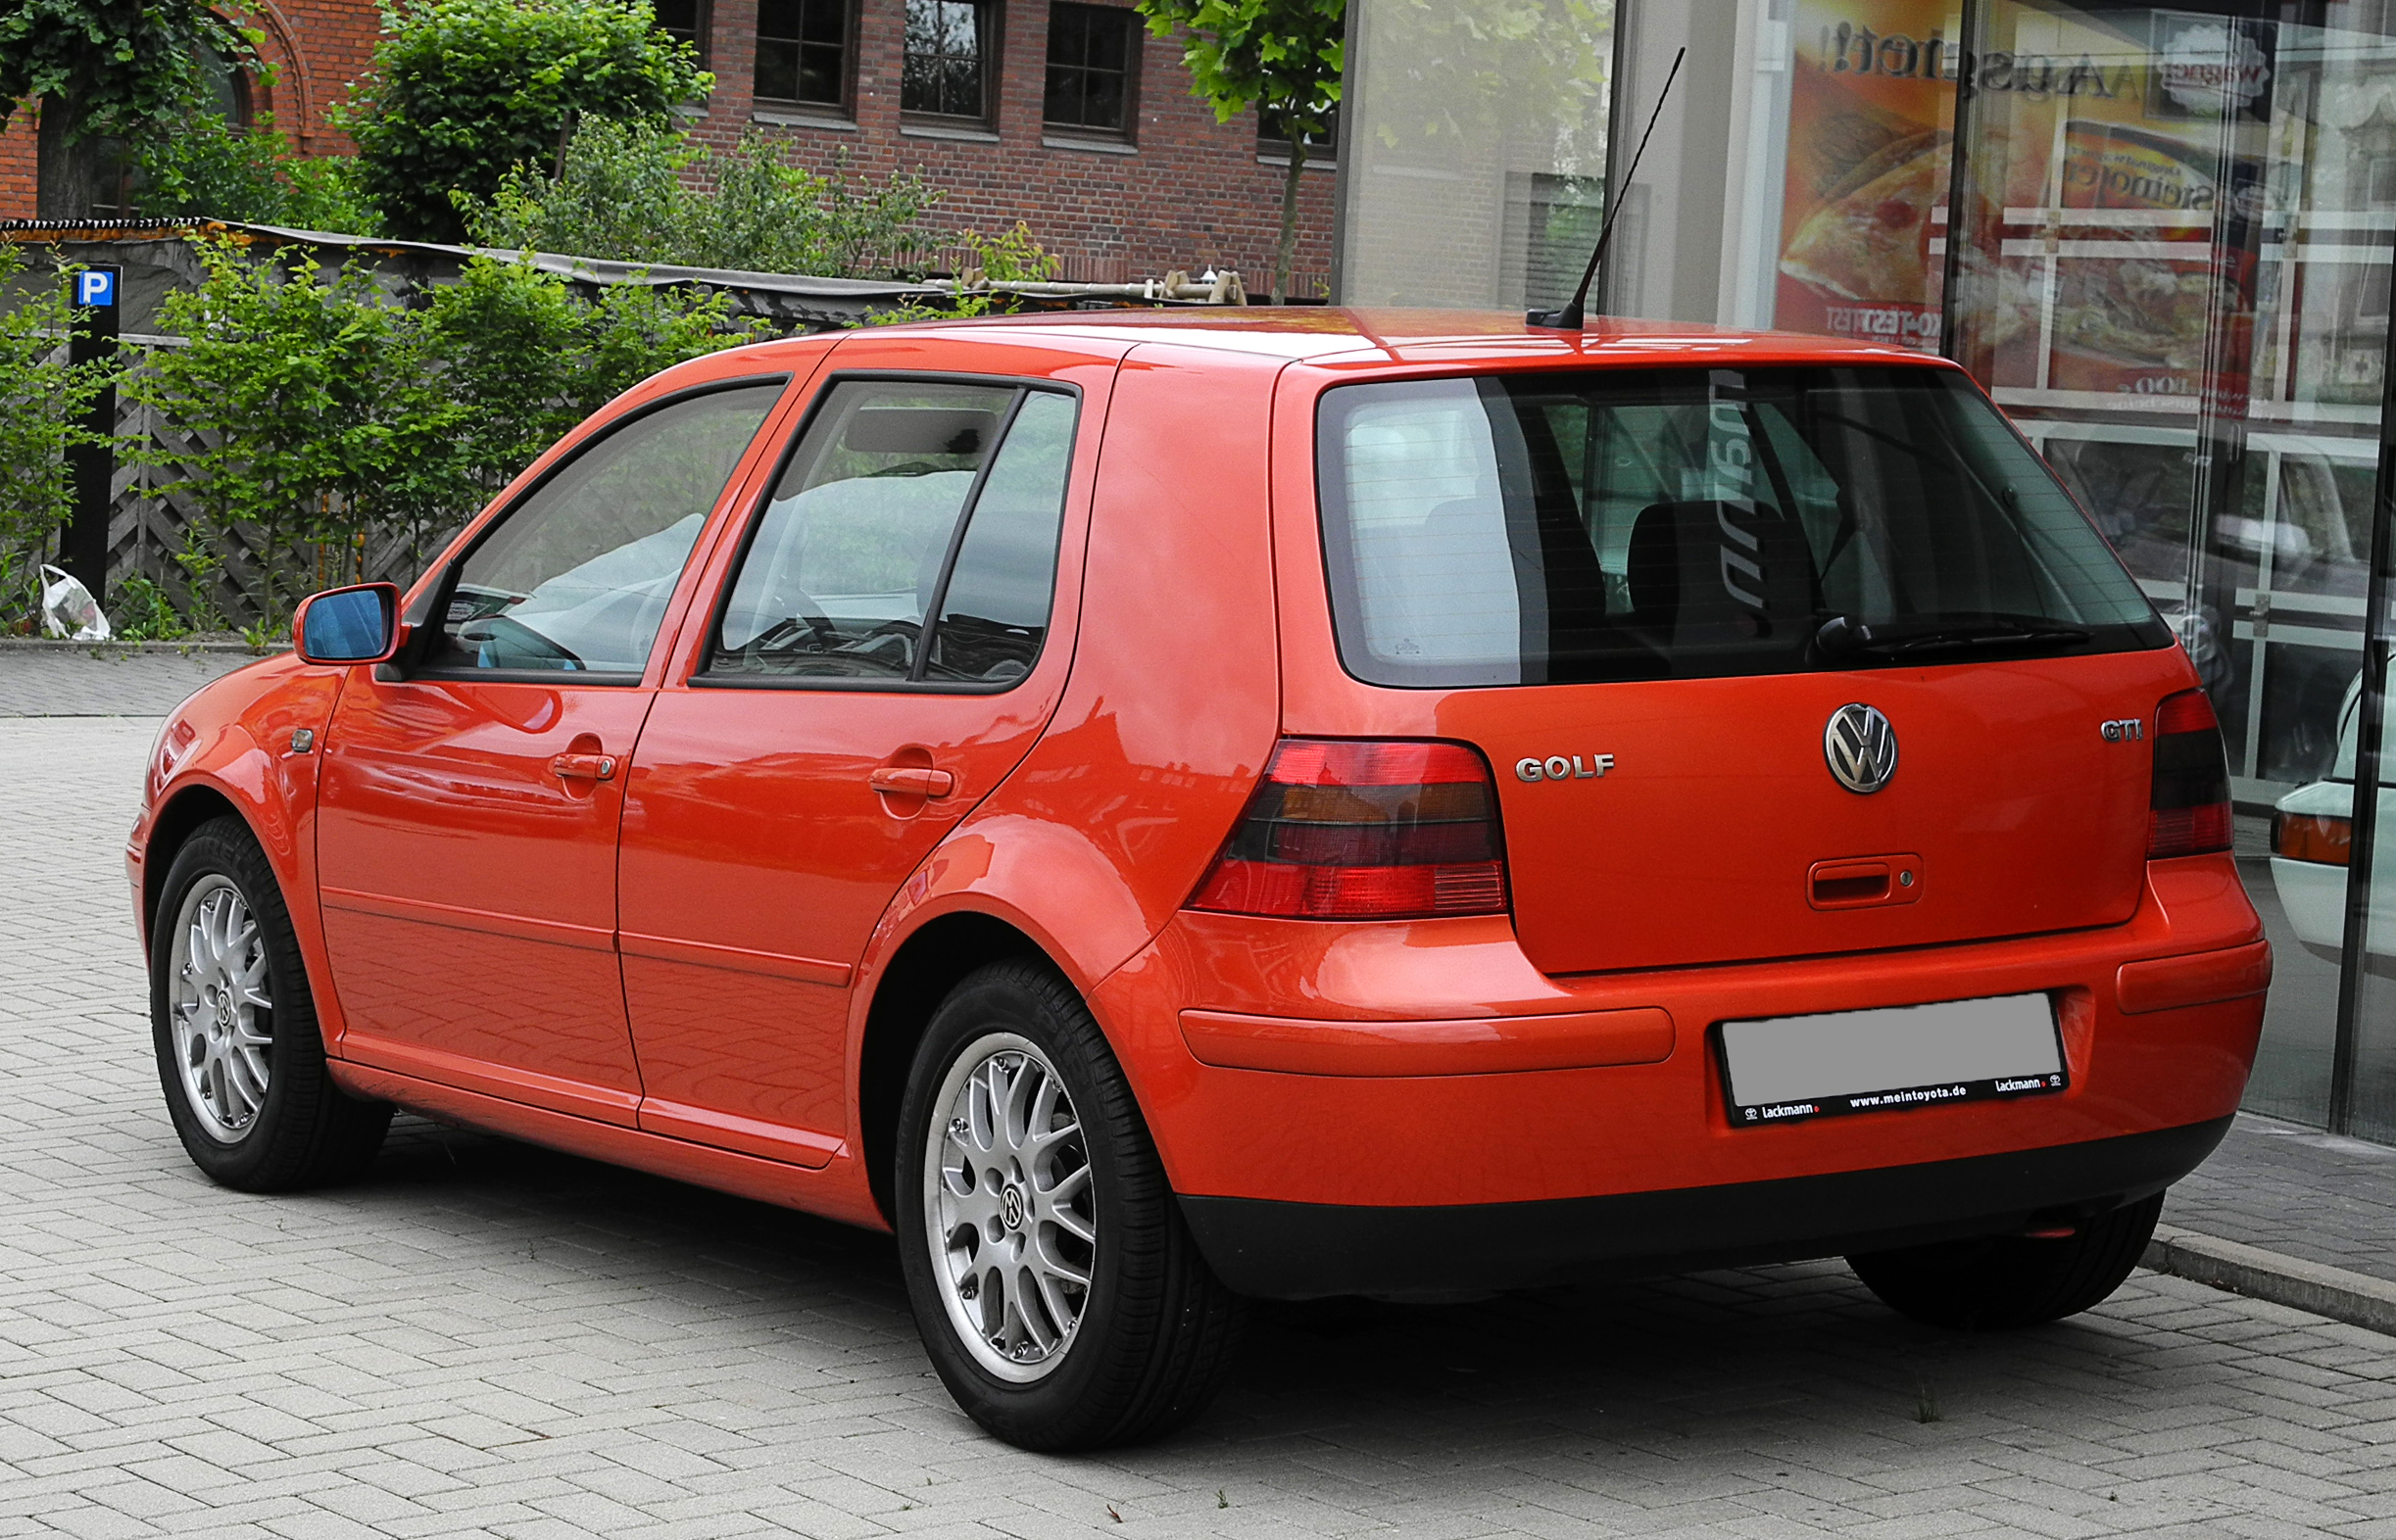 file vw golf gti iv heckansicht 13 juni 2011. Black Bedroom Furniture Sets. Home Design Ideas